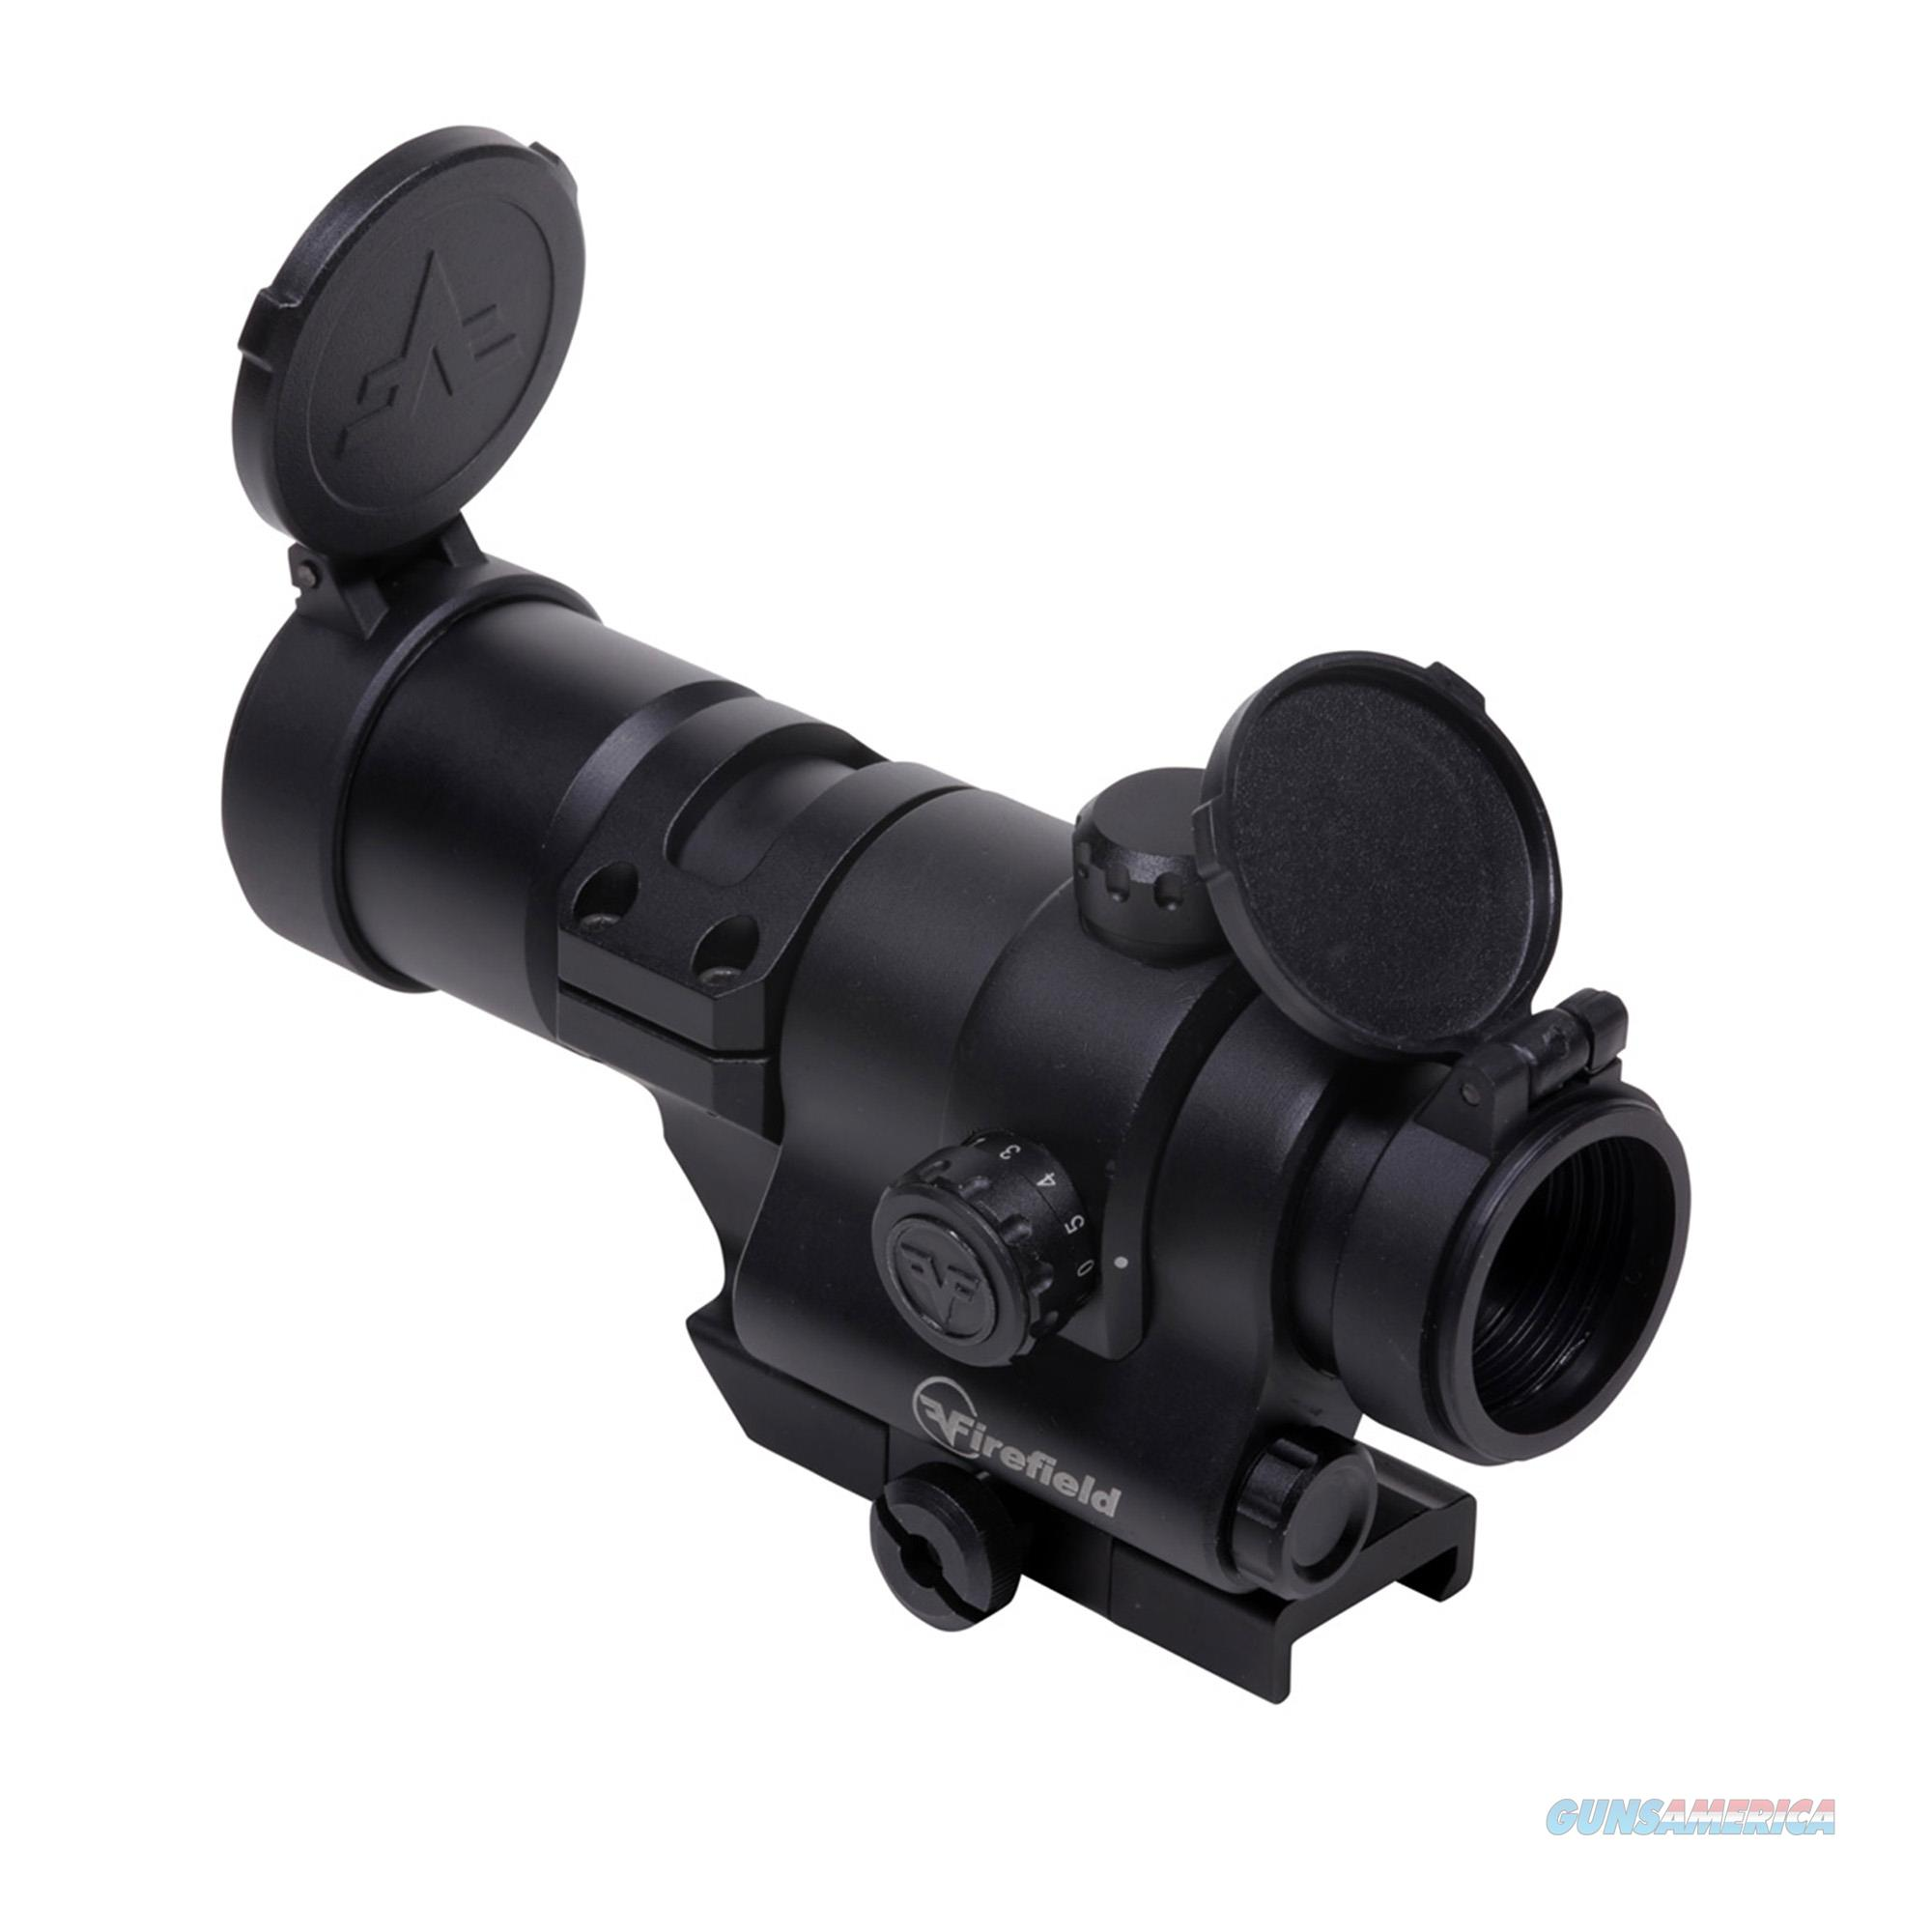 Firefield Impulse Red Dot Sight FF26027  Non-Guns > Scopes/Mounts/Rings & Optics > Rifle Scopes > Variable Focal Length